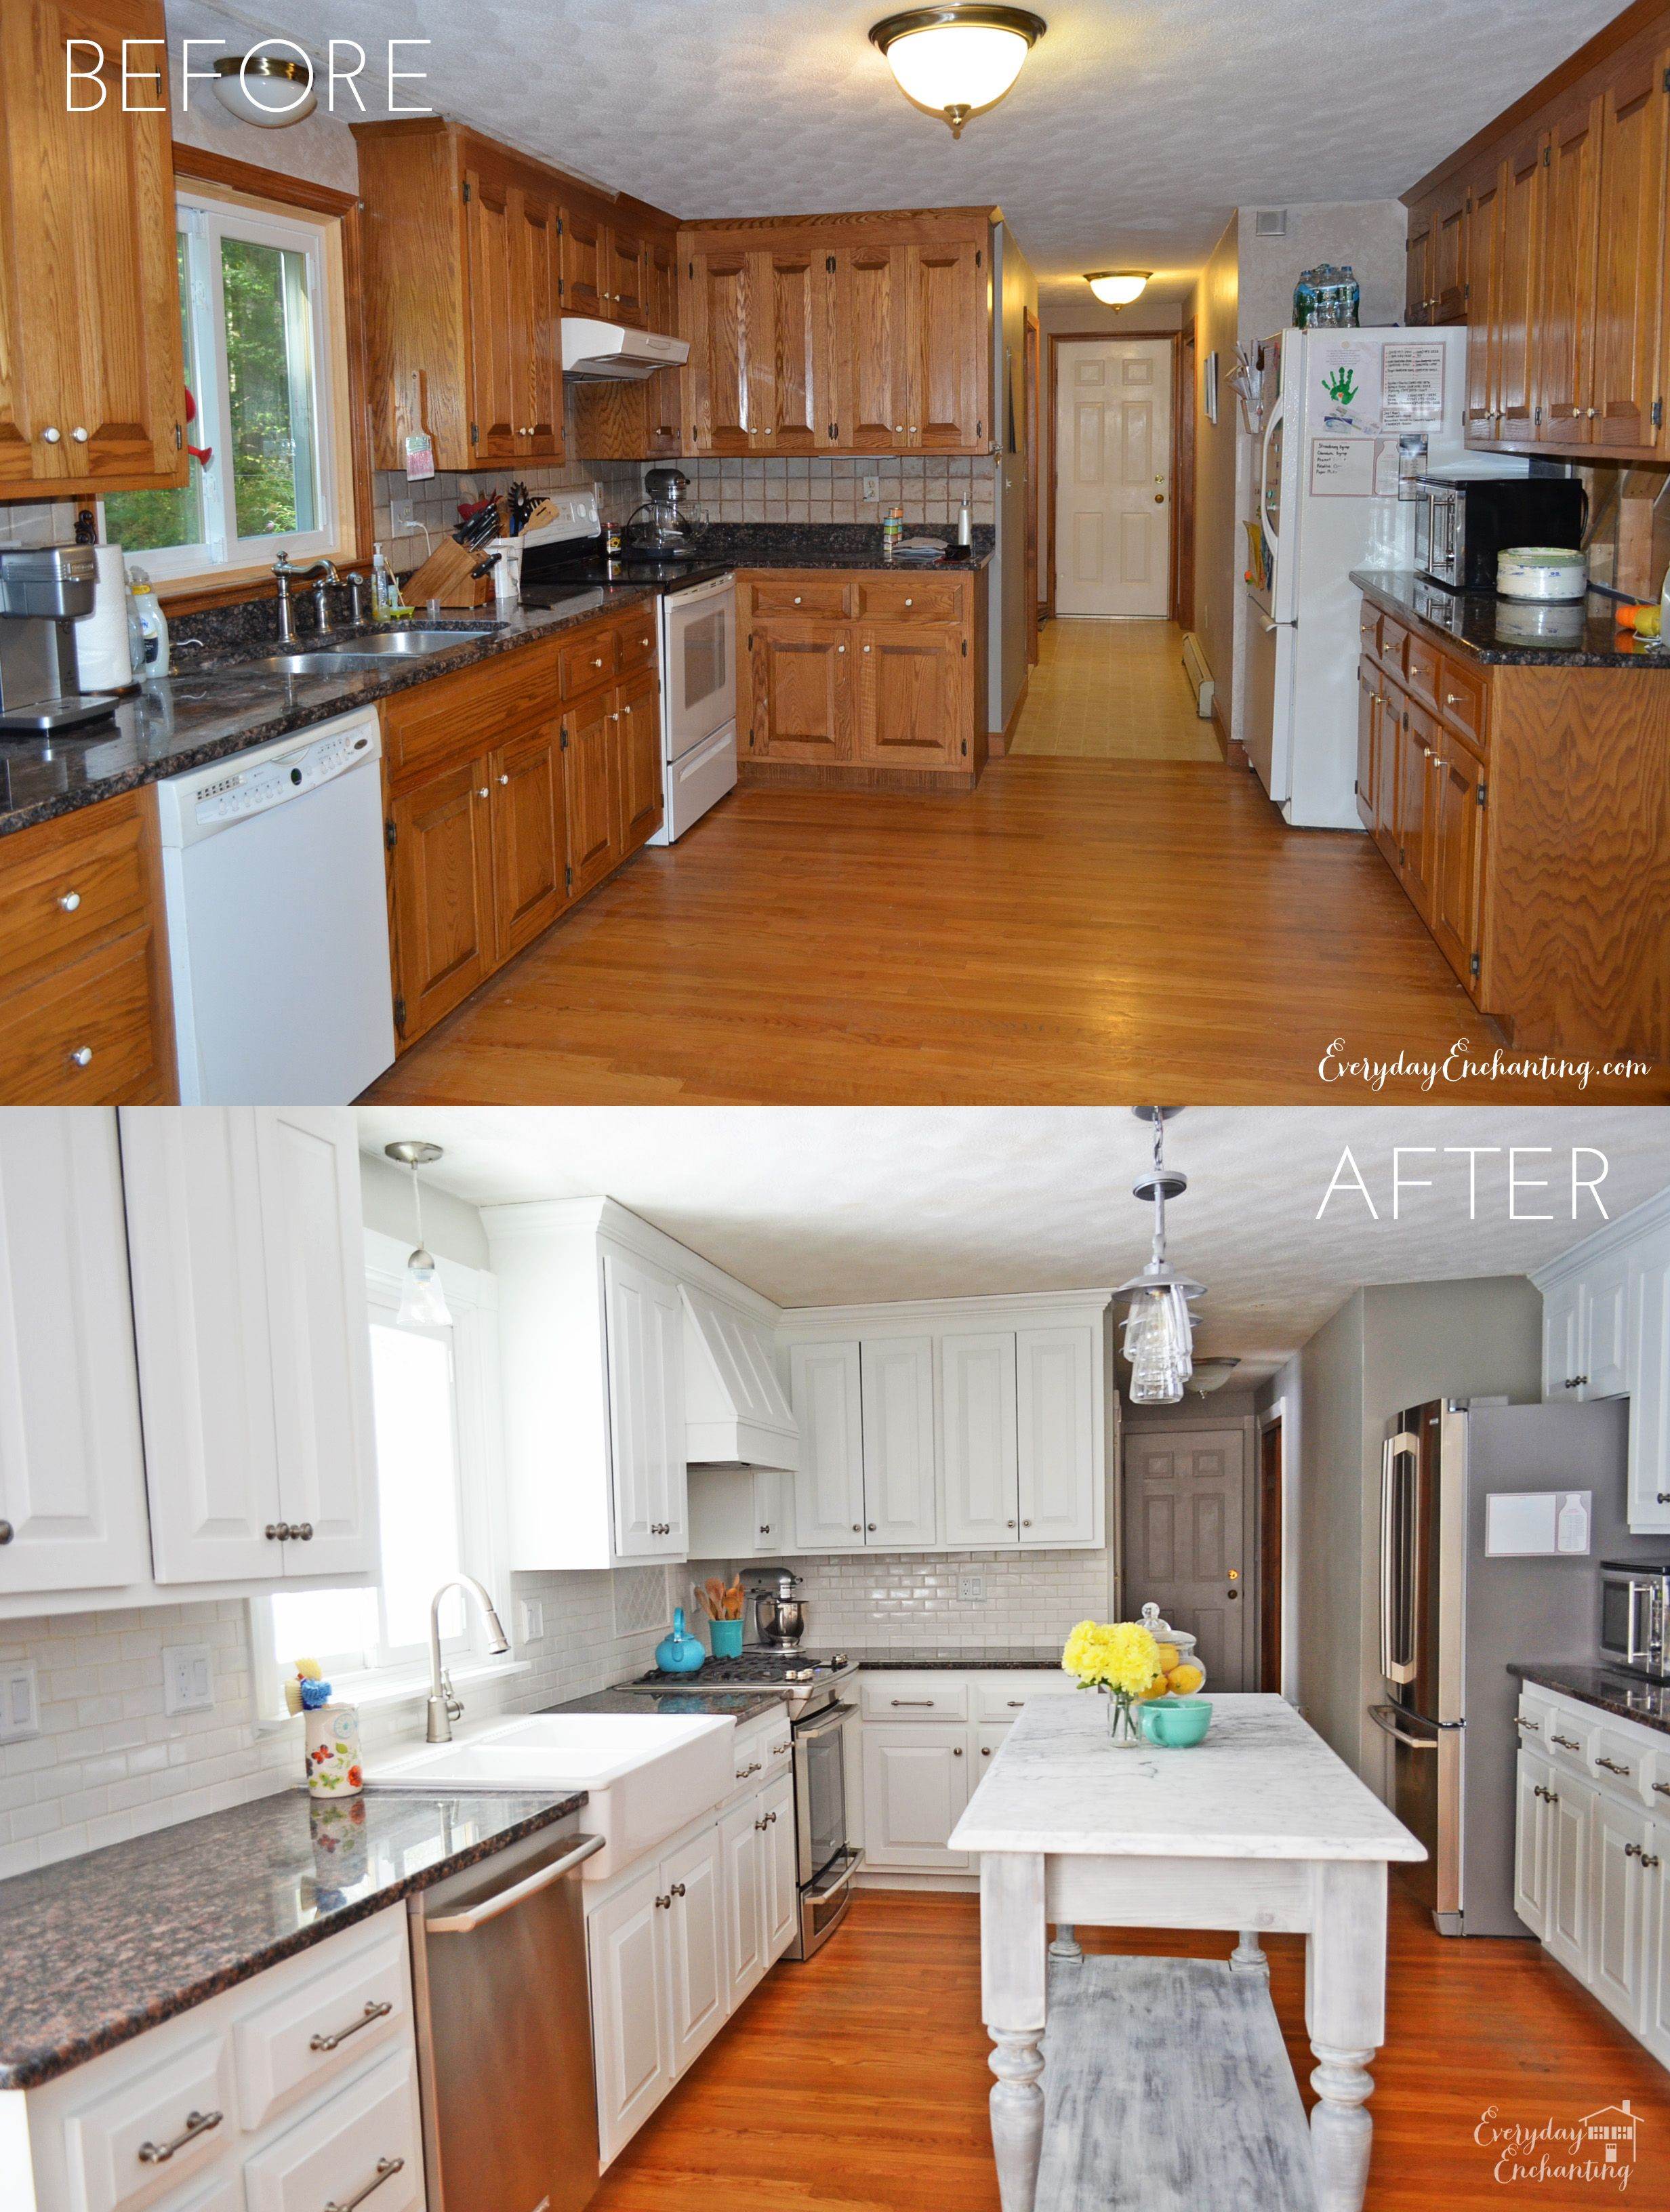 paint kitchen cabinets white How We Painted Our Oak Cabinets and Hid the Grain Stove Narrow kitchen island and Cabinets